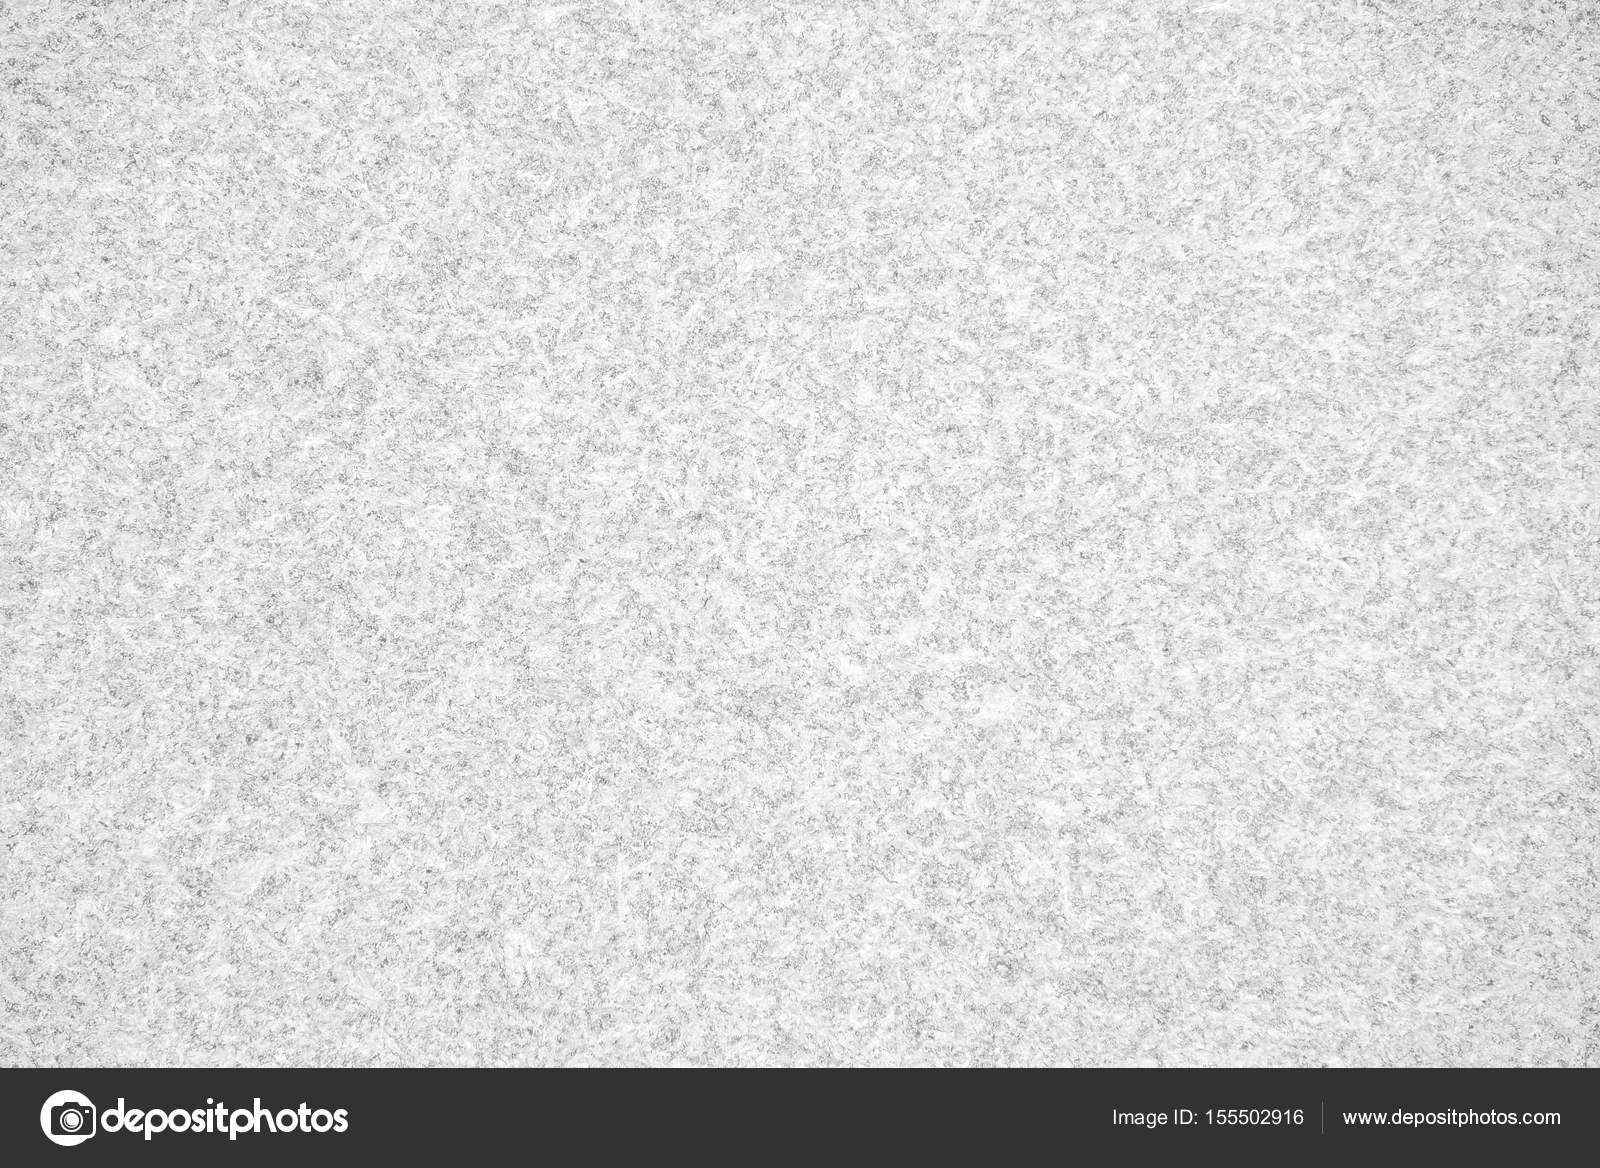 Abstract White Granite Texture Background